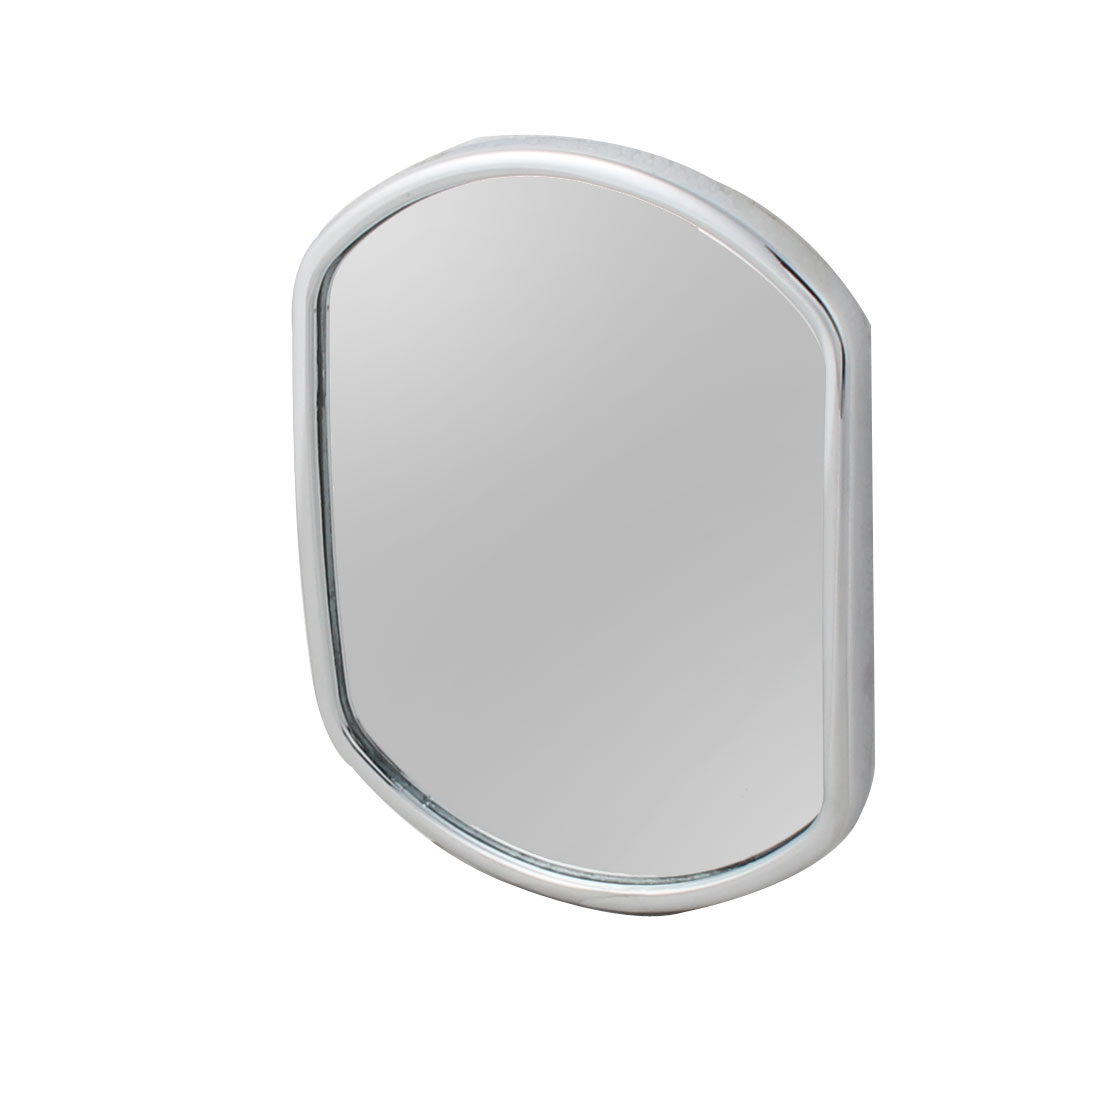 Vehicle Hexagonal Convex Rearview Blind Spot Mirror Silver Tone 137 x 105 x 12mm